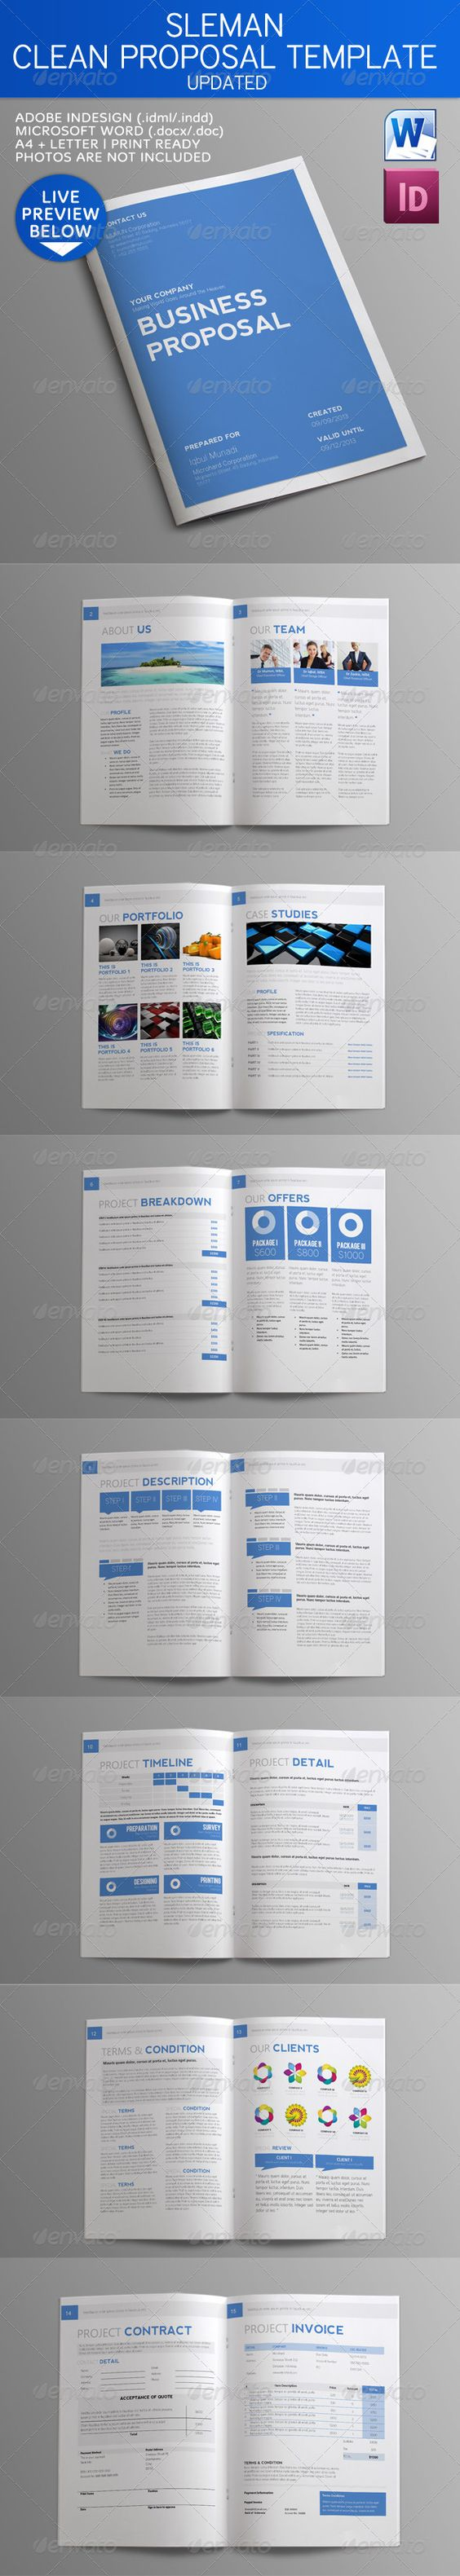 Sleman Clean Proposal Template   Timeline, For sale and Organizations